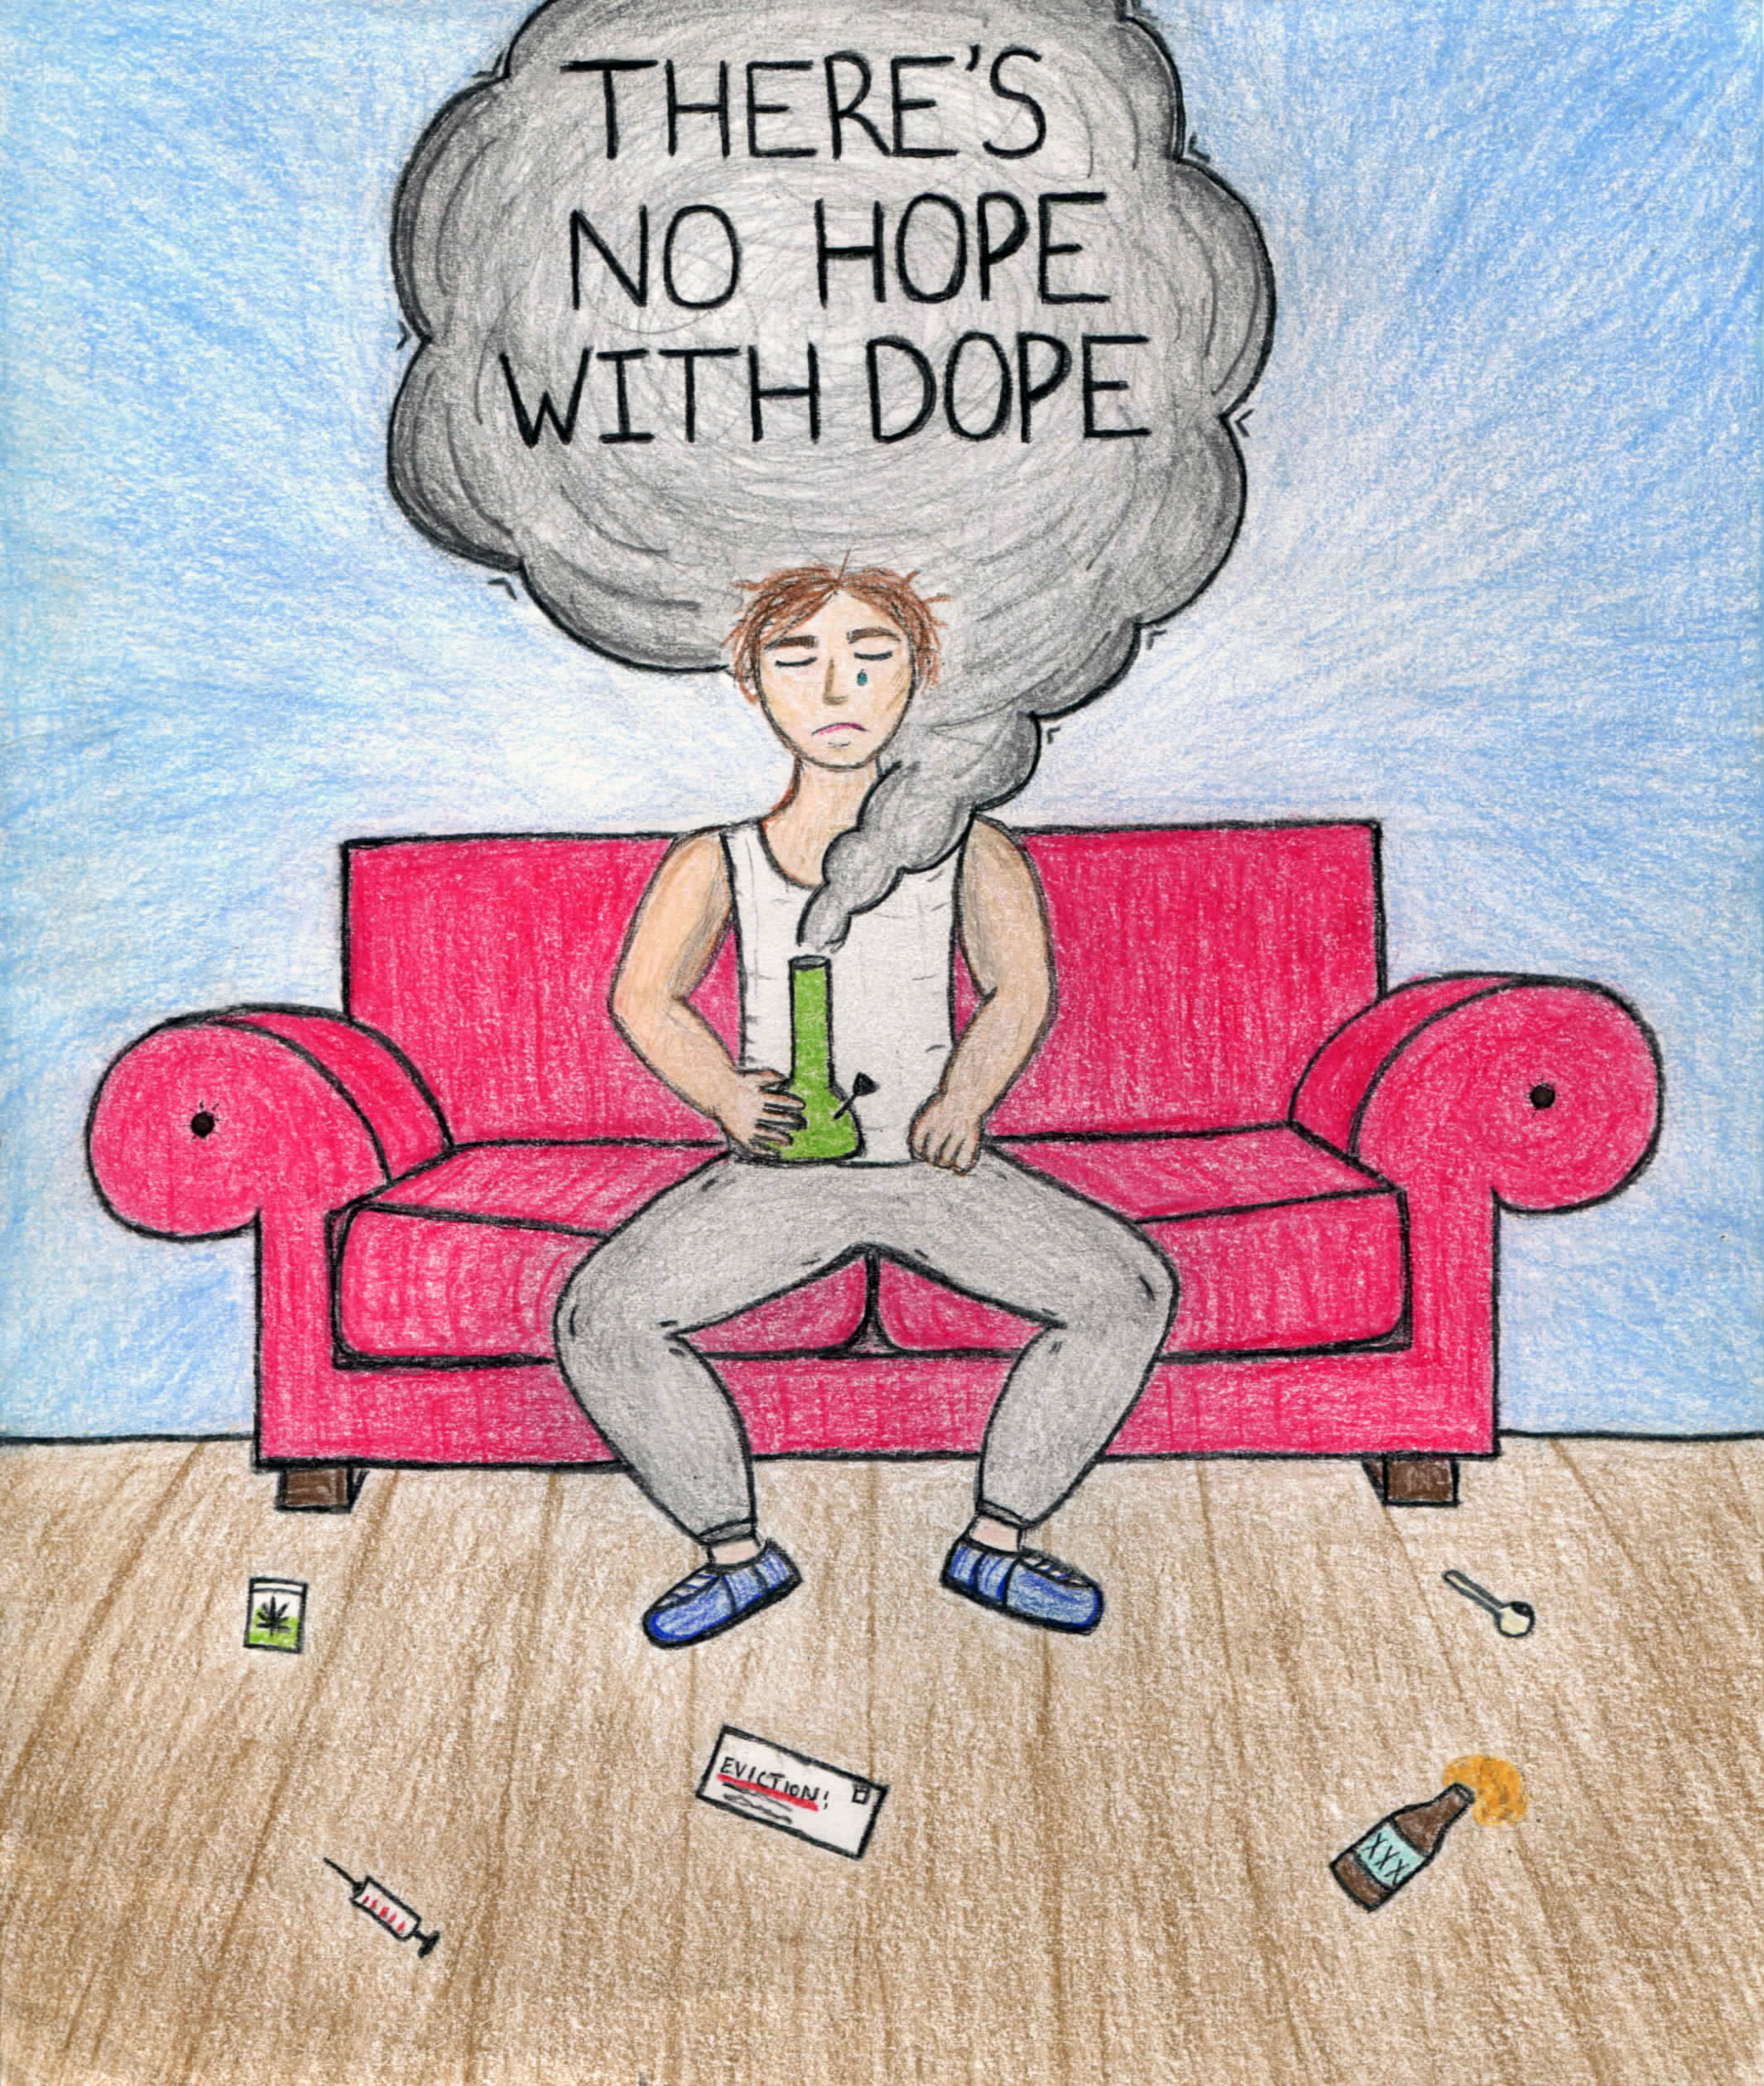 2-no-hope-with-dope